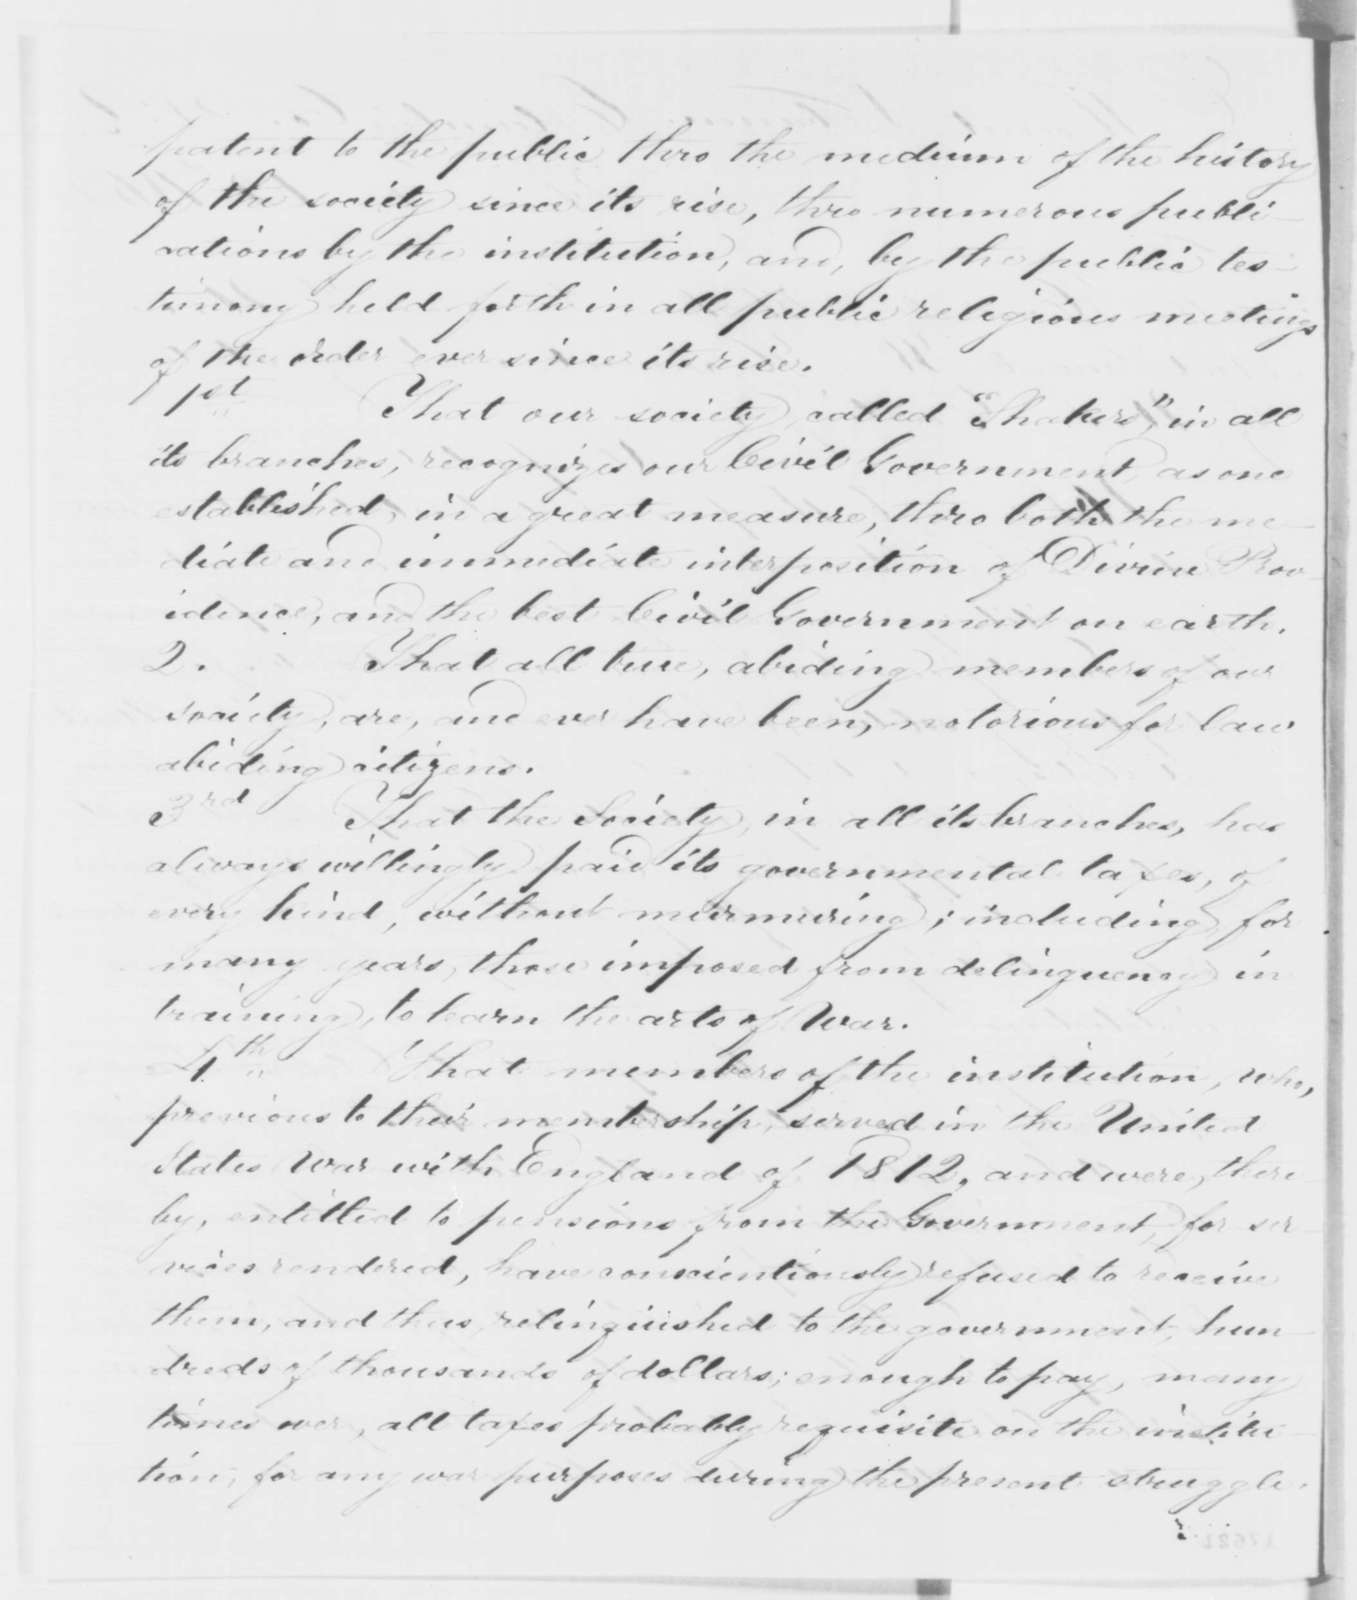 Daniel Boler, et al. to Abraham Lincoln and William H. Seward, Tuesday, August 12, 1862  (Exemption from draft for Shakers)